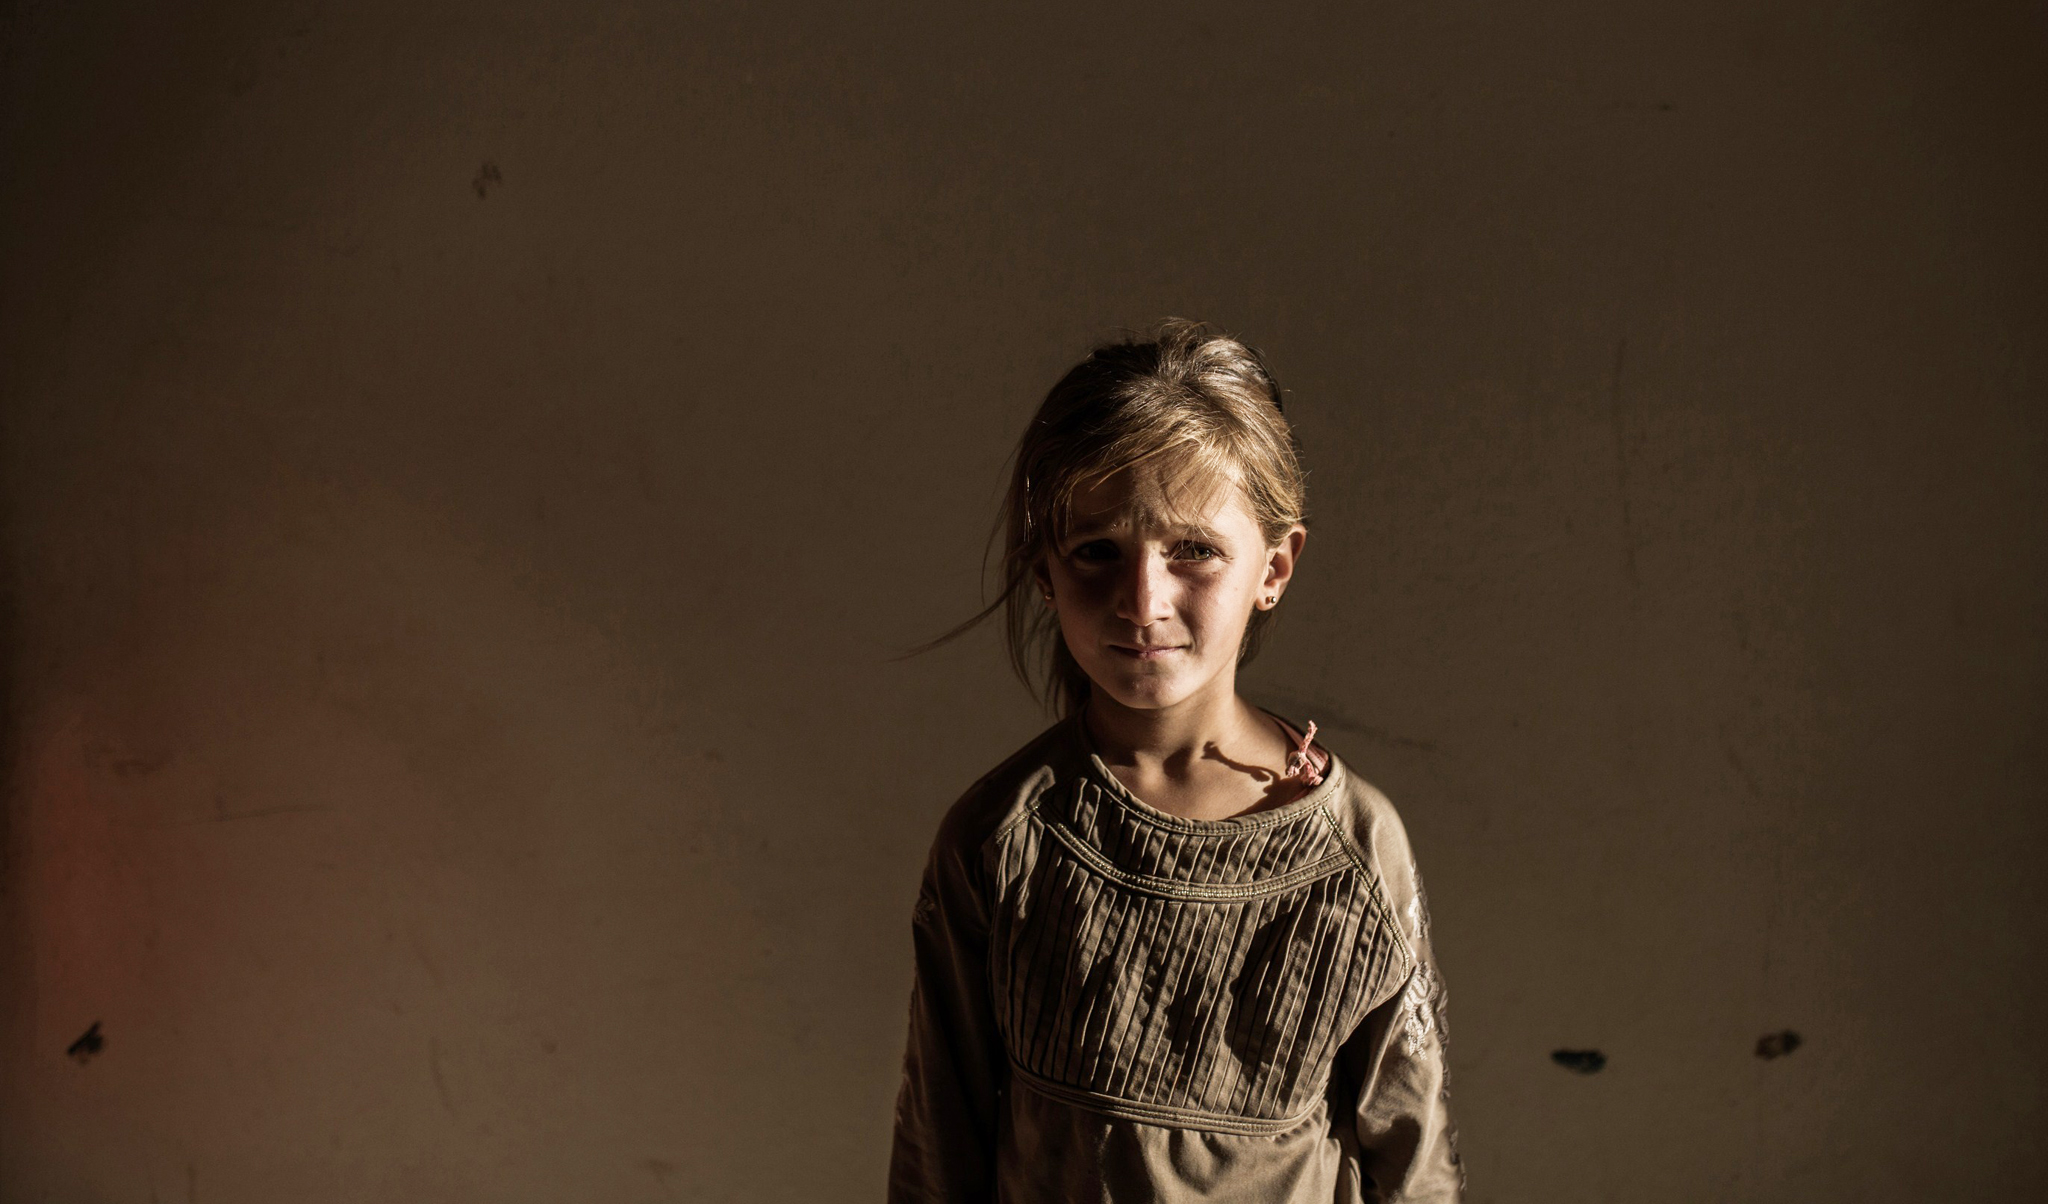 A Syrian refugee girl stands in a buildi...A Syrian refugee girl stands in a building on June 27, 2015 in Syrian Kurdish city of Amuda, after running away from clashes between regime forces and the Islamic State group.  AFP PHOTO/UYGAR ONDER SIMSEKUYGAR ONDER SIMSEK/AFP/Getty Images